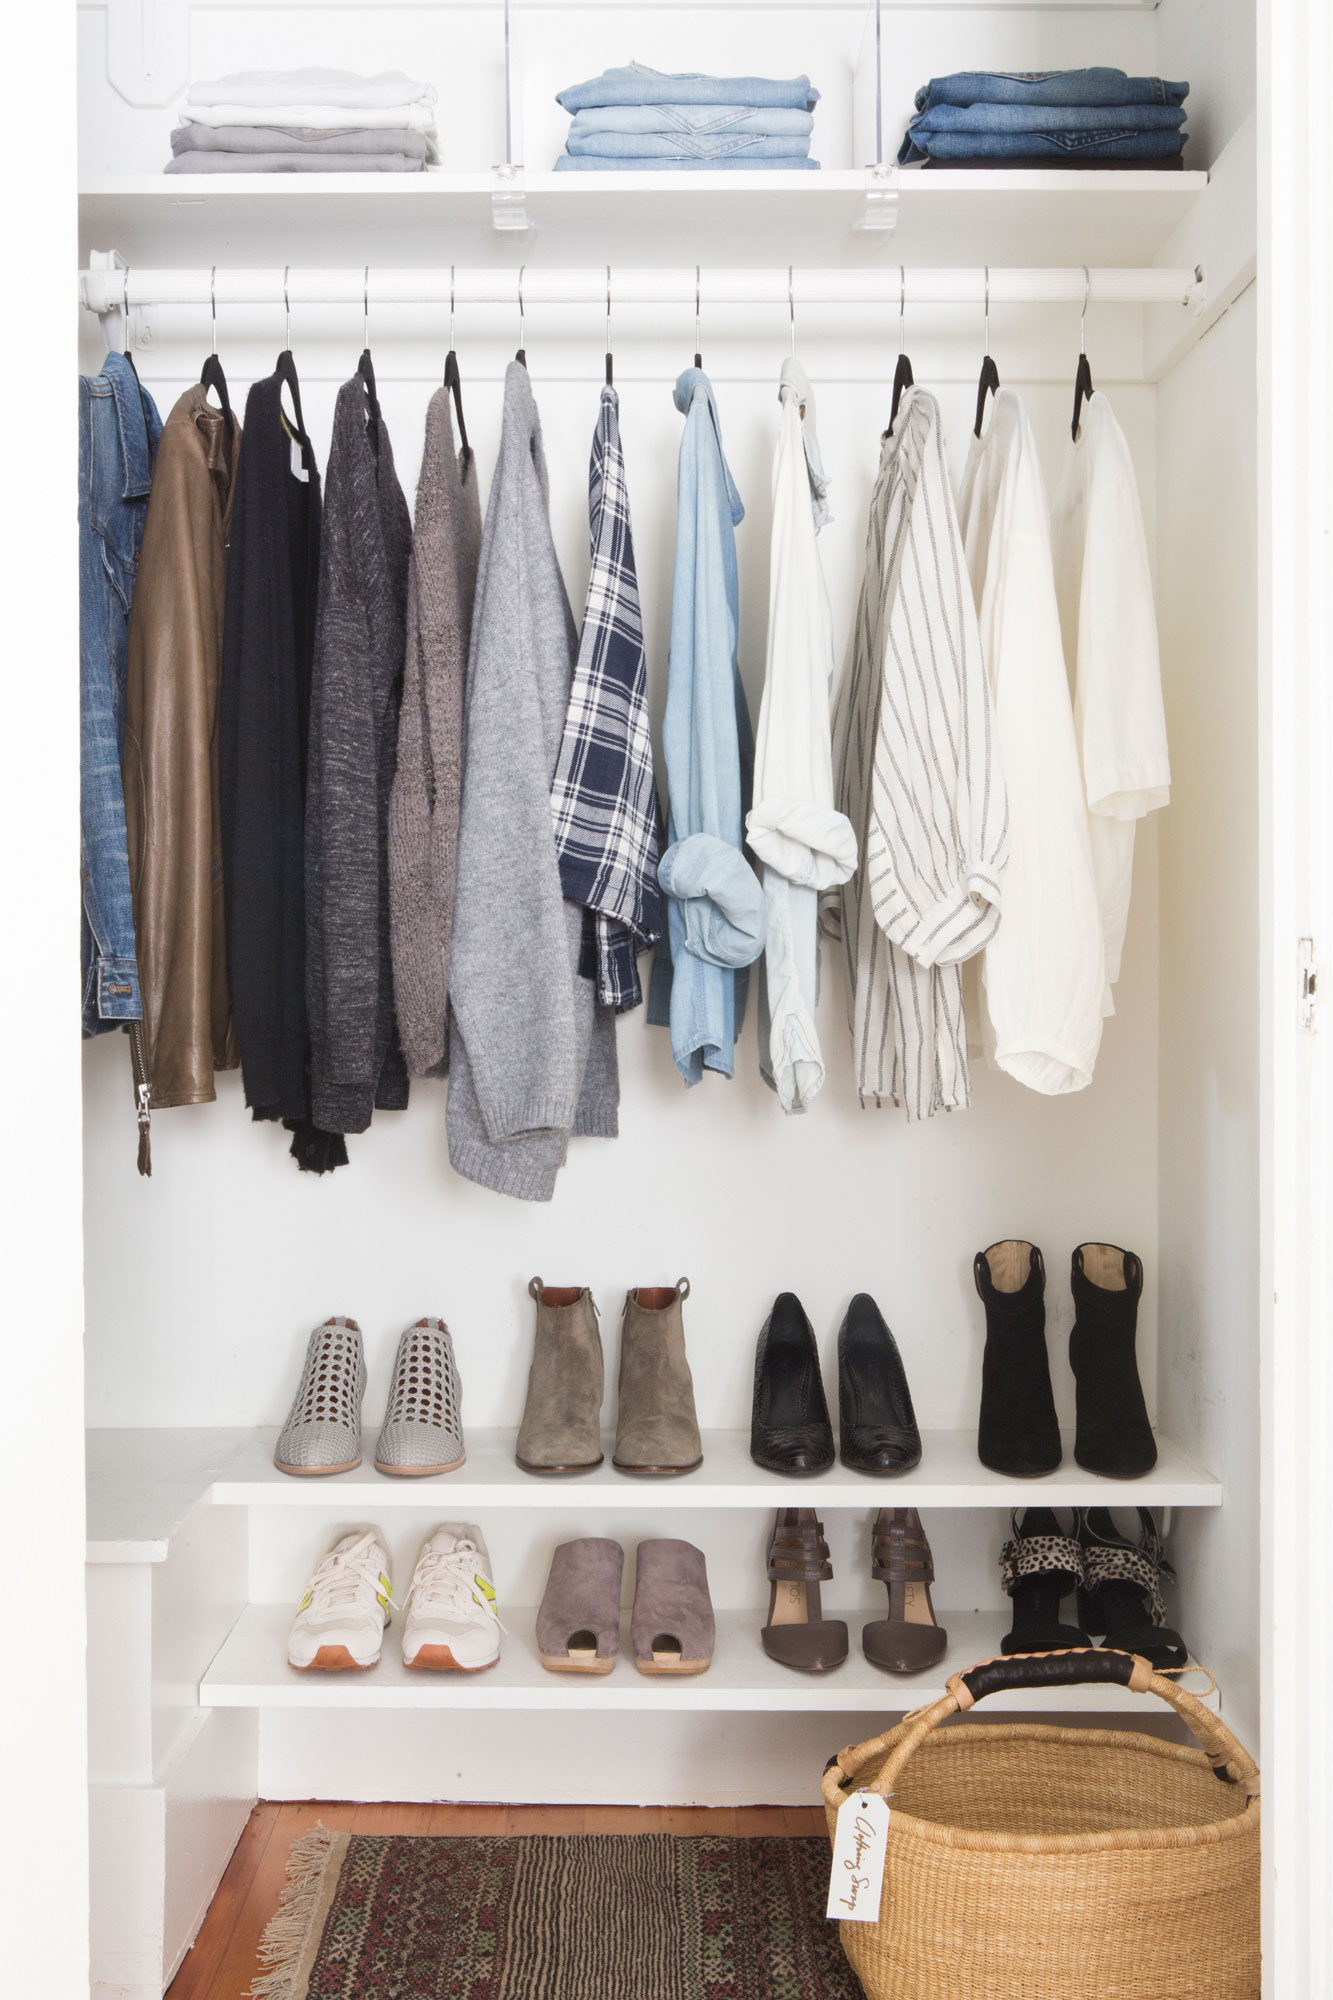 5 Simple Steps To A Streamlined Stylish Closet